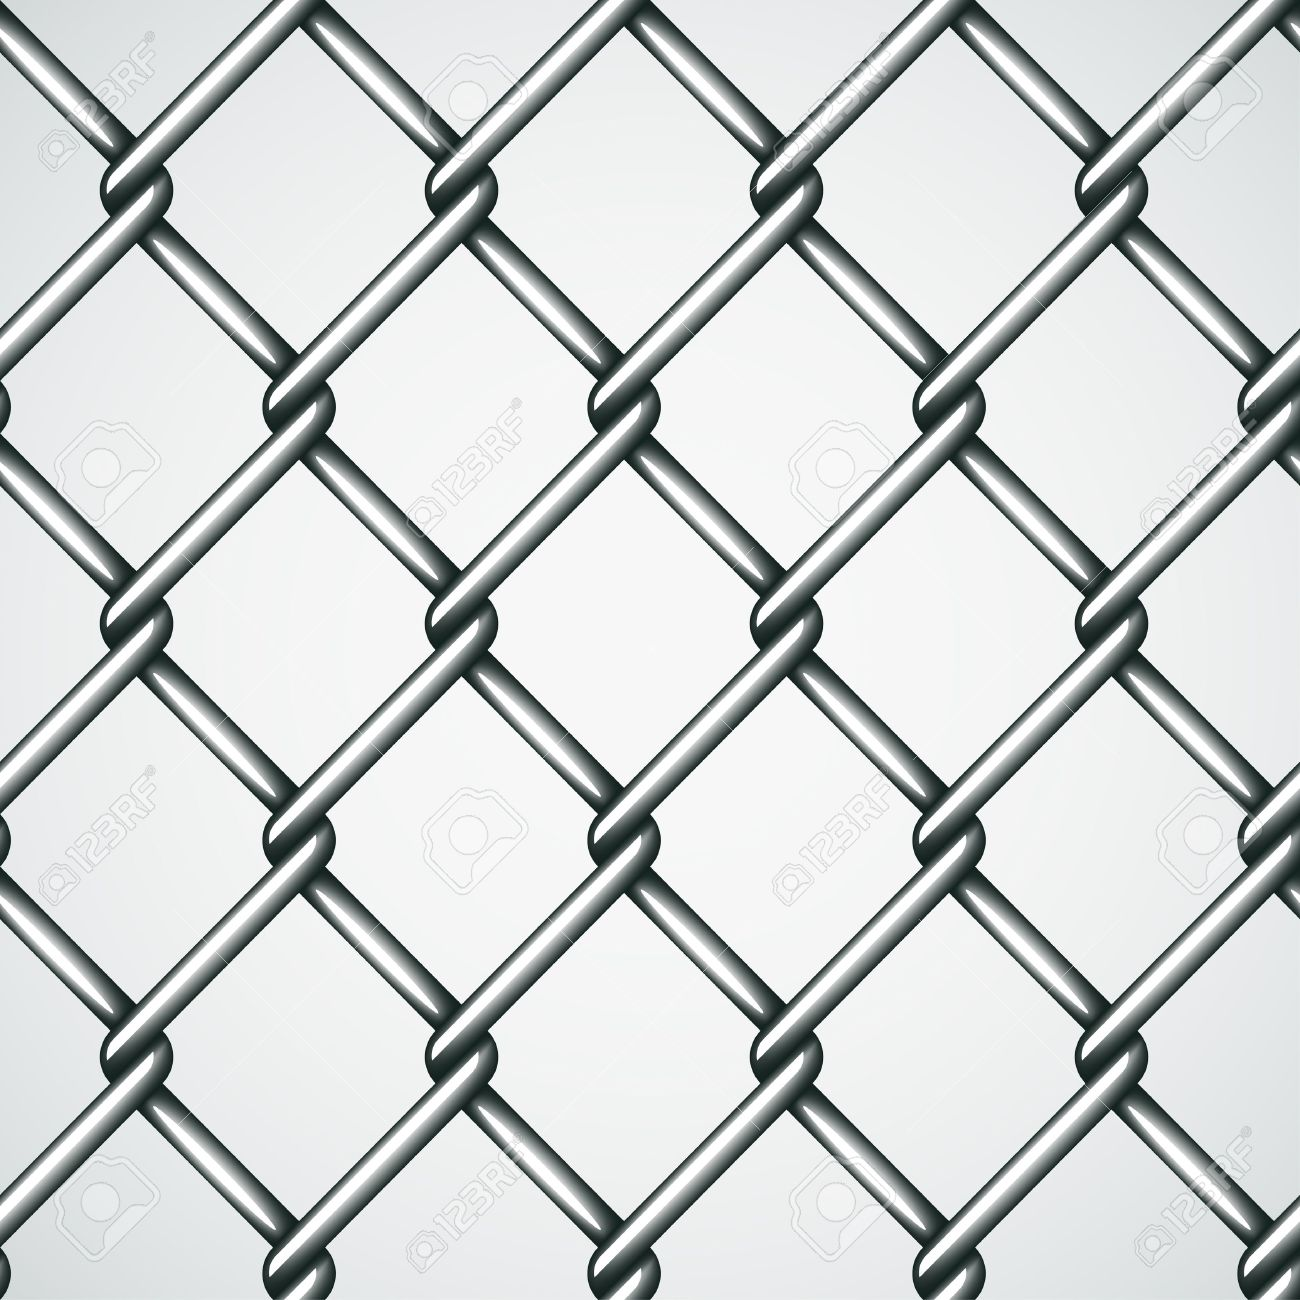 Vector Wire Fence Seamless Background Royalty Free Cliparts.